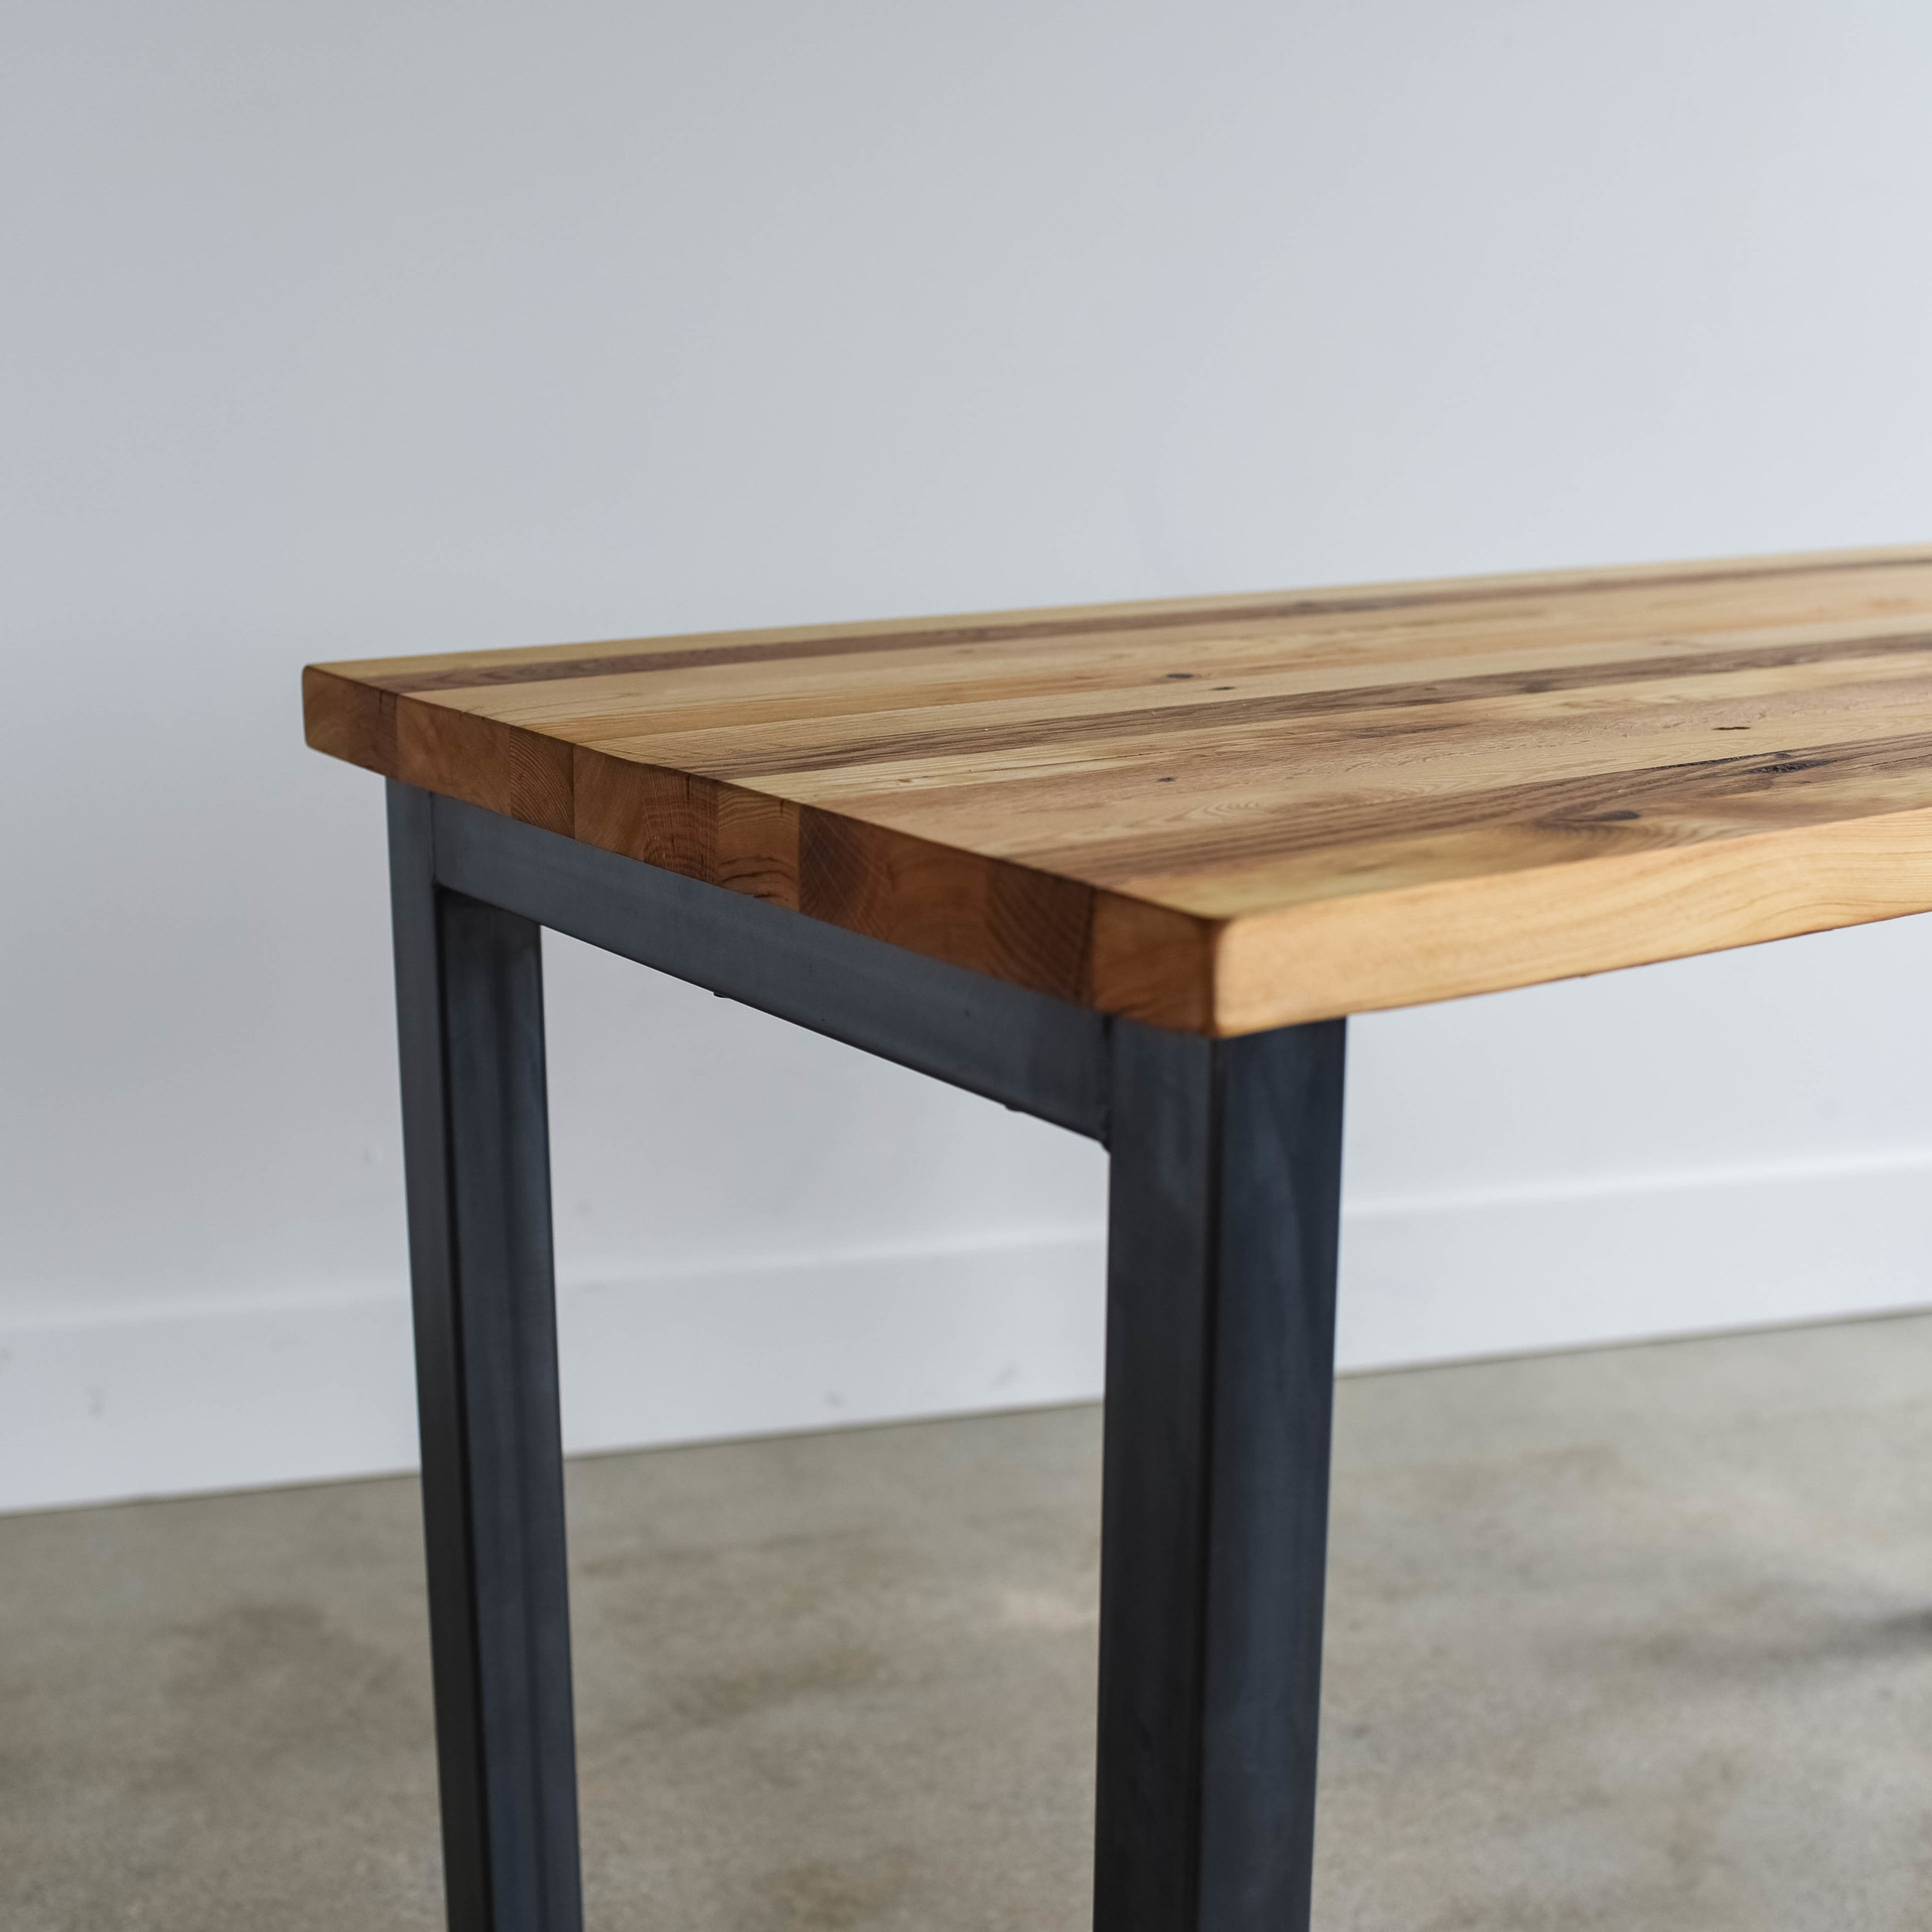 Butcher Block Reclaimed Wood Dining Table What We Make